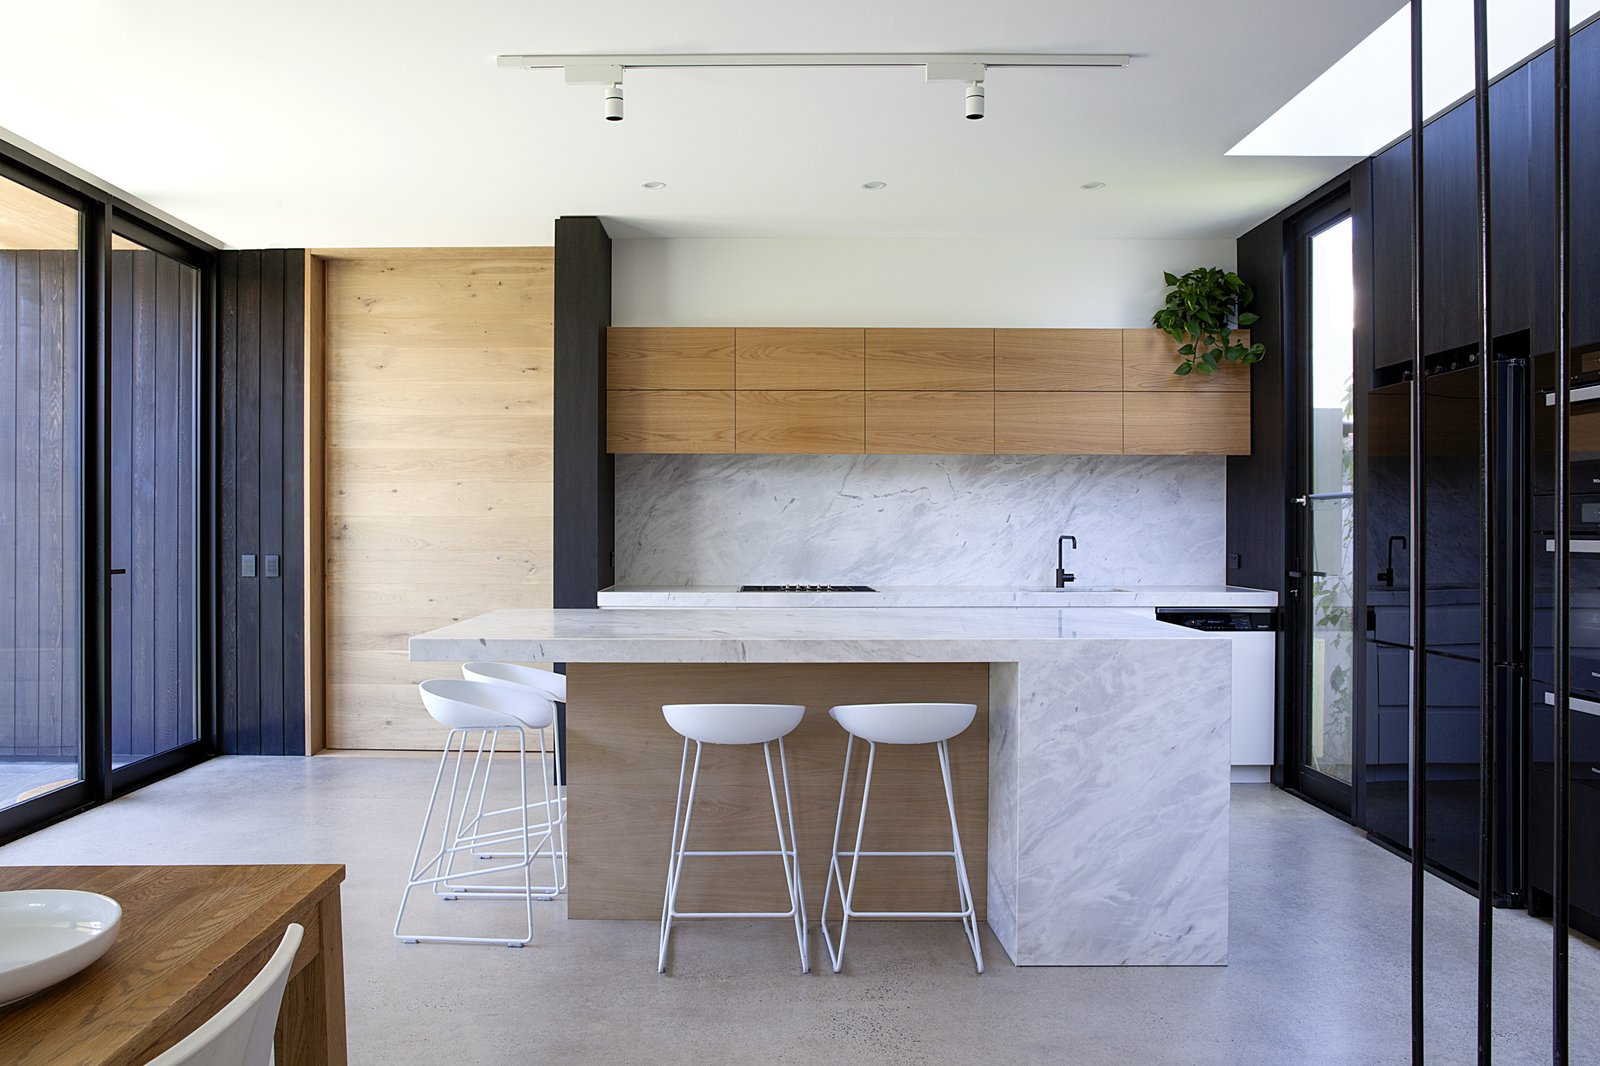 Kitchen, Dishwasher, Range Hood, Wall Oven, White, Undermount, Wood, Refrigerator, Track, Concrete, Marble, Microwave, Cooktops, Marble, and Recessed Thomas + Williams Architects sow simplicity with an artful combination of concrete, oak, steel, and prefabricated panels in Port Melbourne, Victoria. Oak and concrete meet a substantial marble countertop and backsplash in the kitchen.  Best Kitchen Recessed Range Hood Refrigerator Cooktops Dishwasher Photos from A Streamlined Addition Serves a Family of Four in Australia